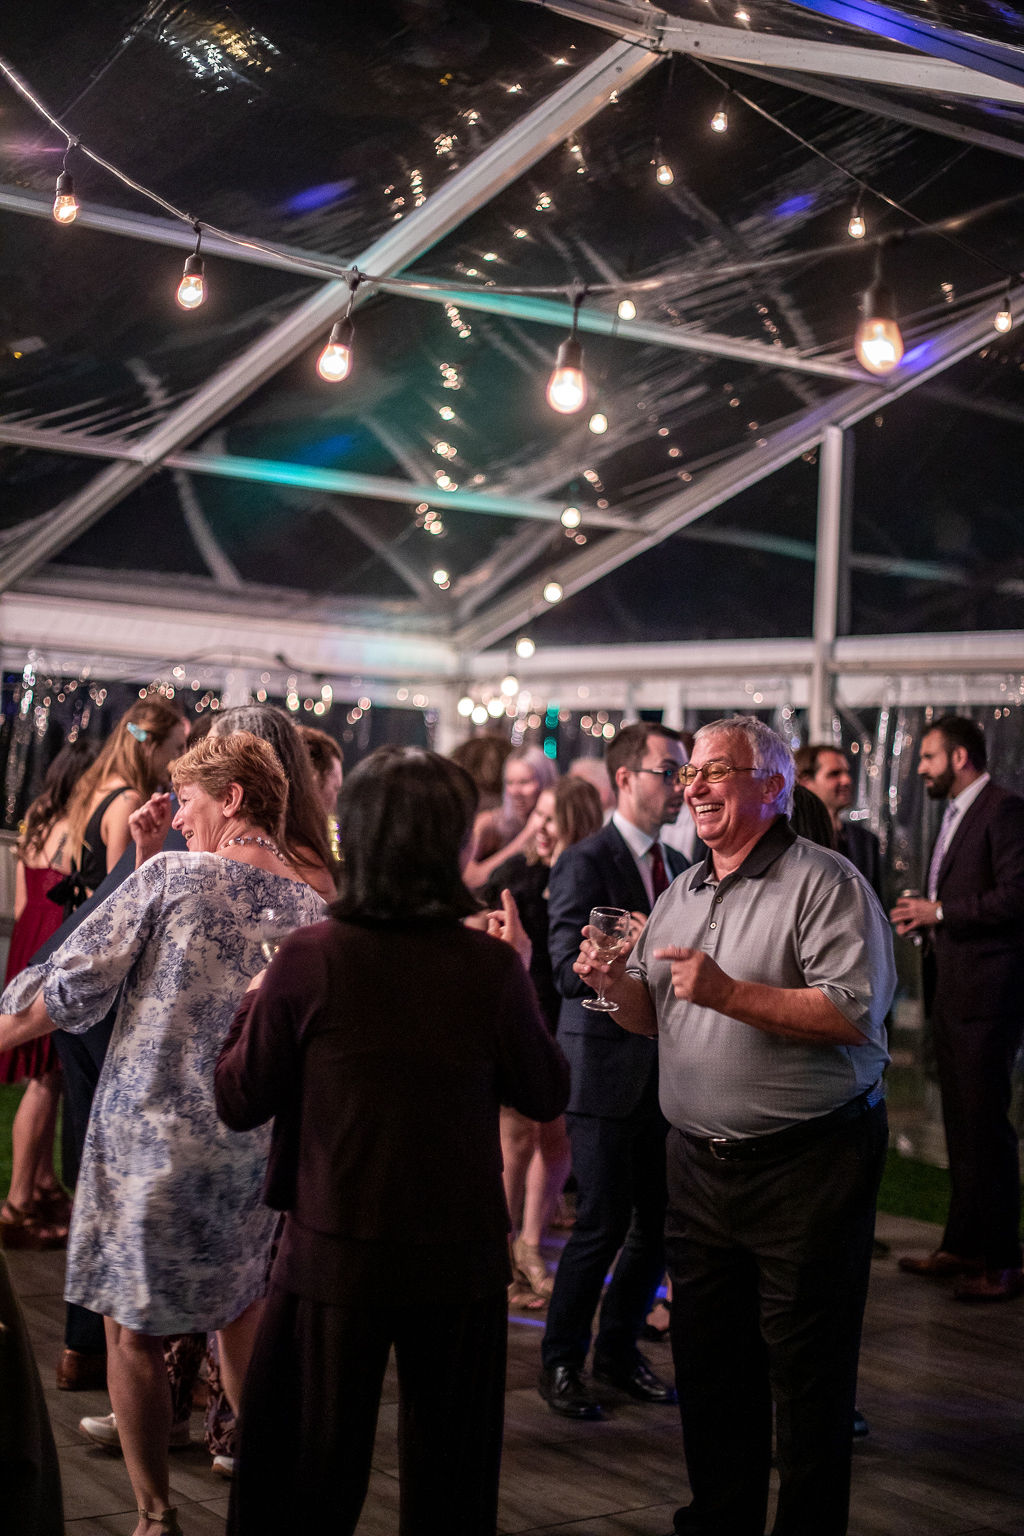 guests mingle on the dance floor of this outdoor wedding venue.